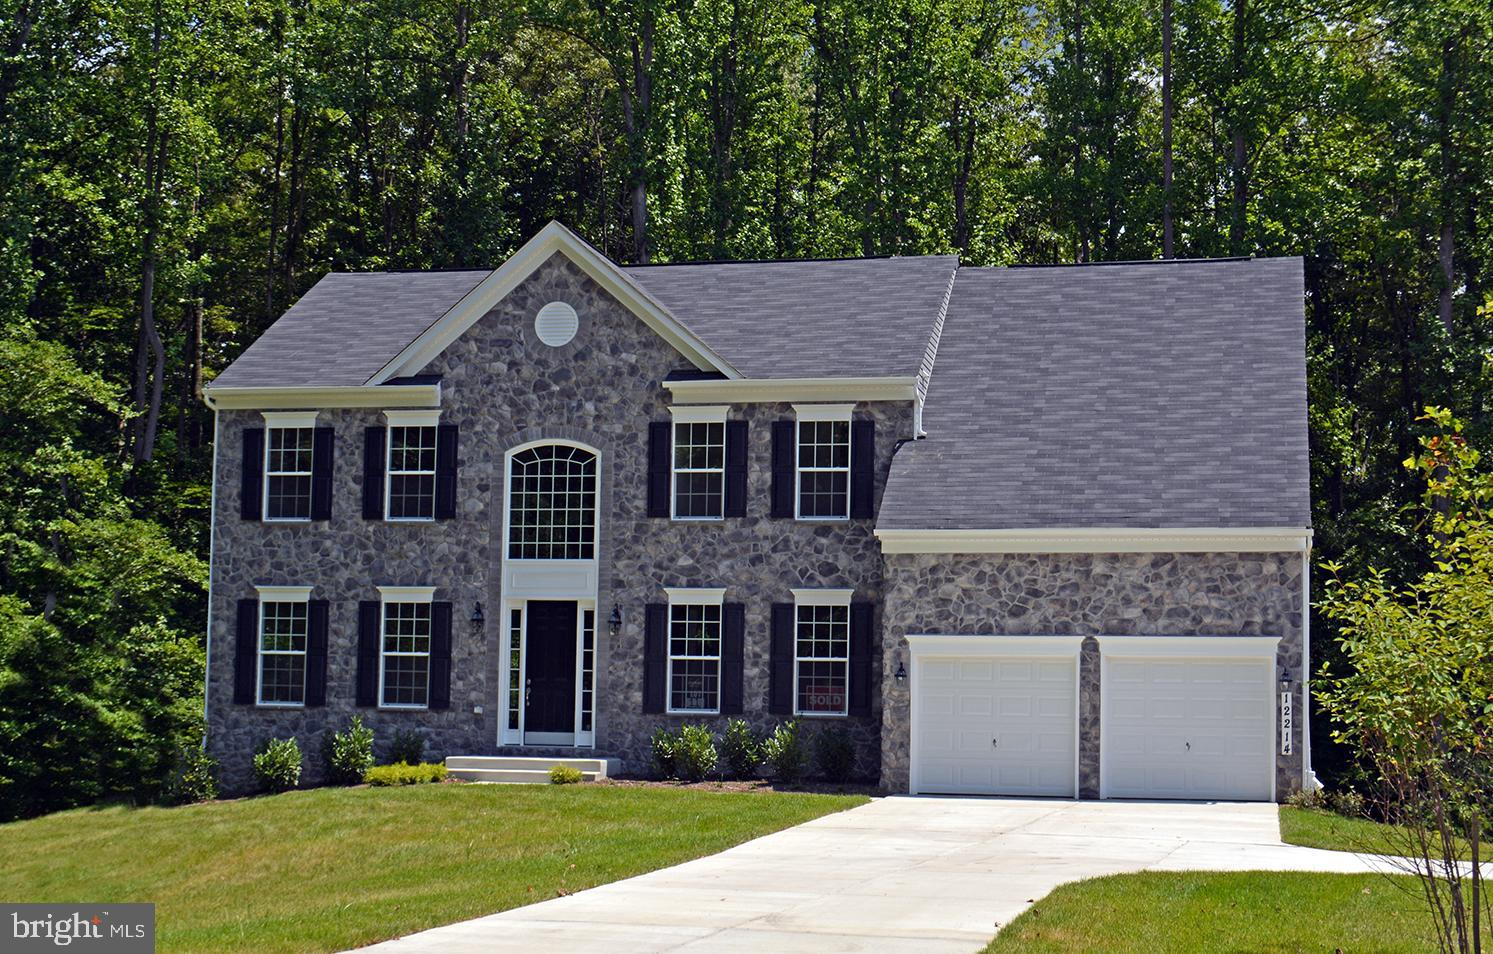 2528 COTTER ROAD, MILLERS, MD 21102